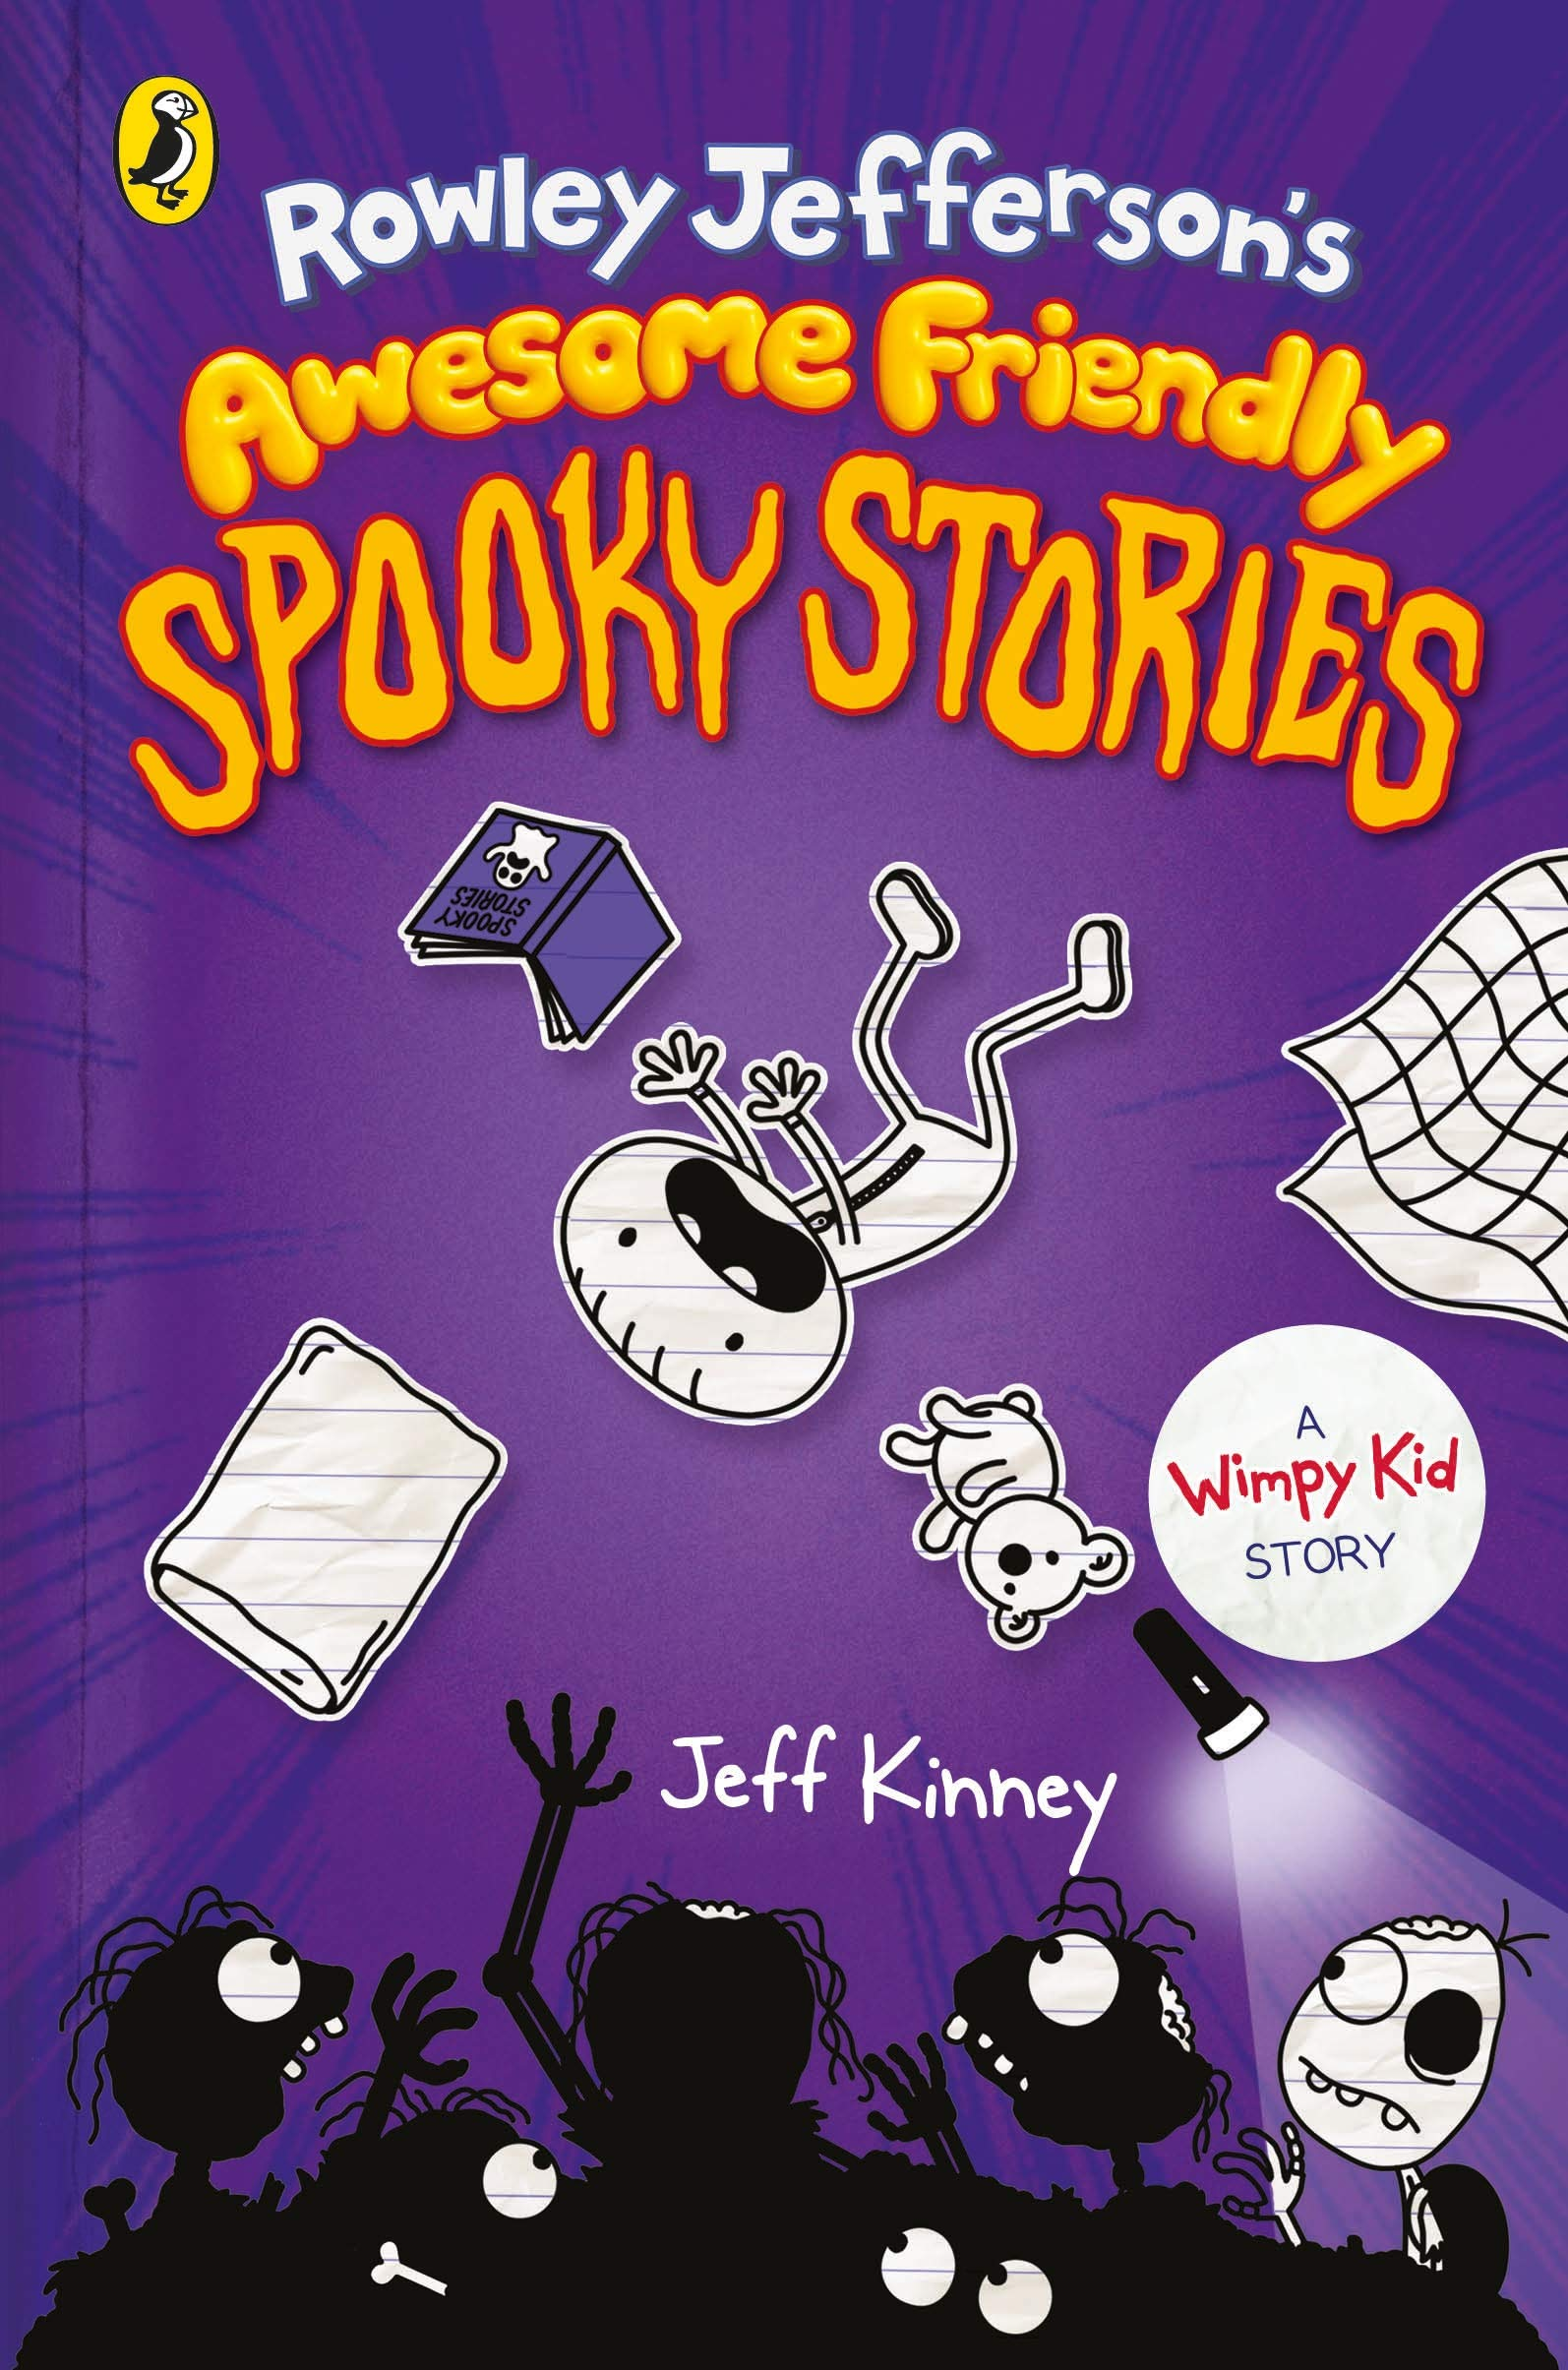 Diary of an Awesome Friendly Kid #3: Rowley Jefferson's Awesome Friendly Spooky Stories (Hardcover)